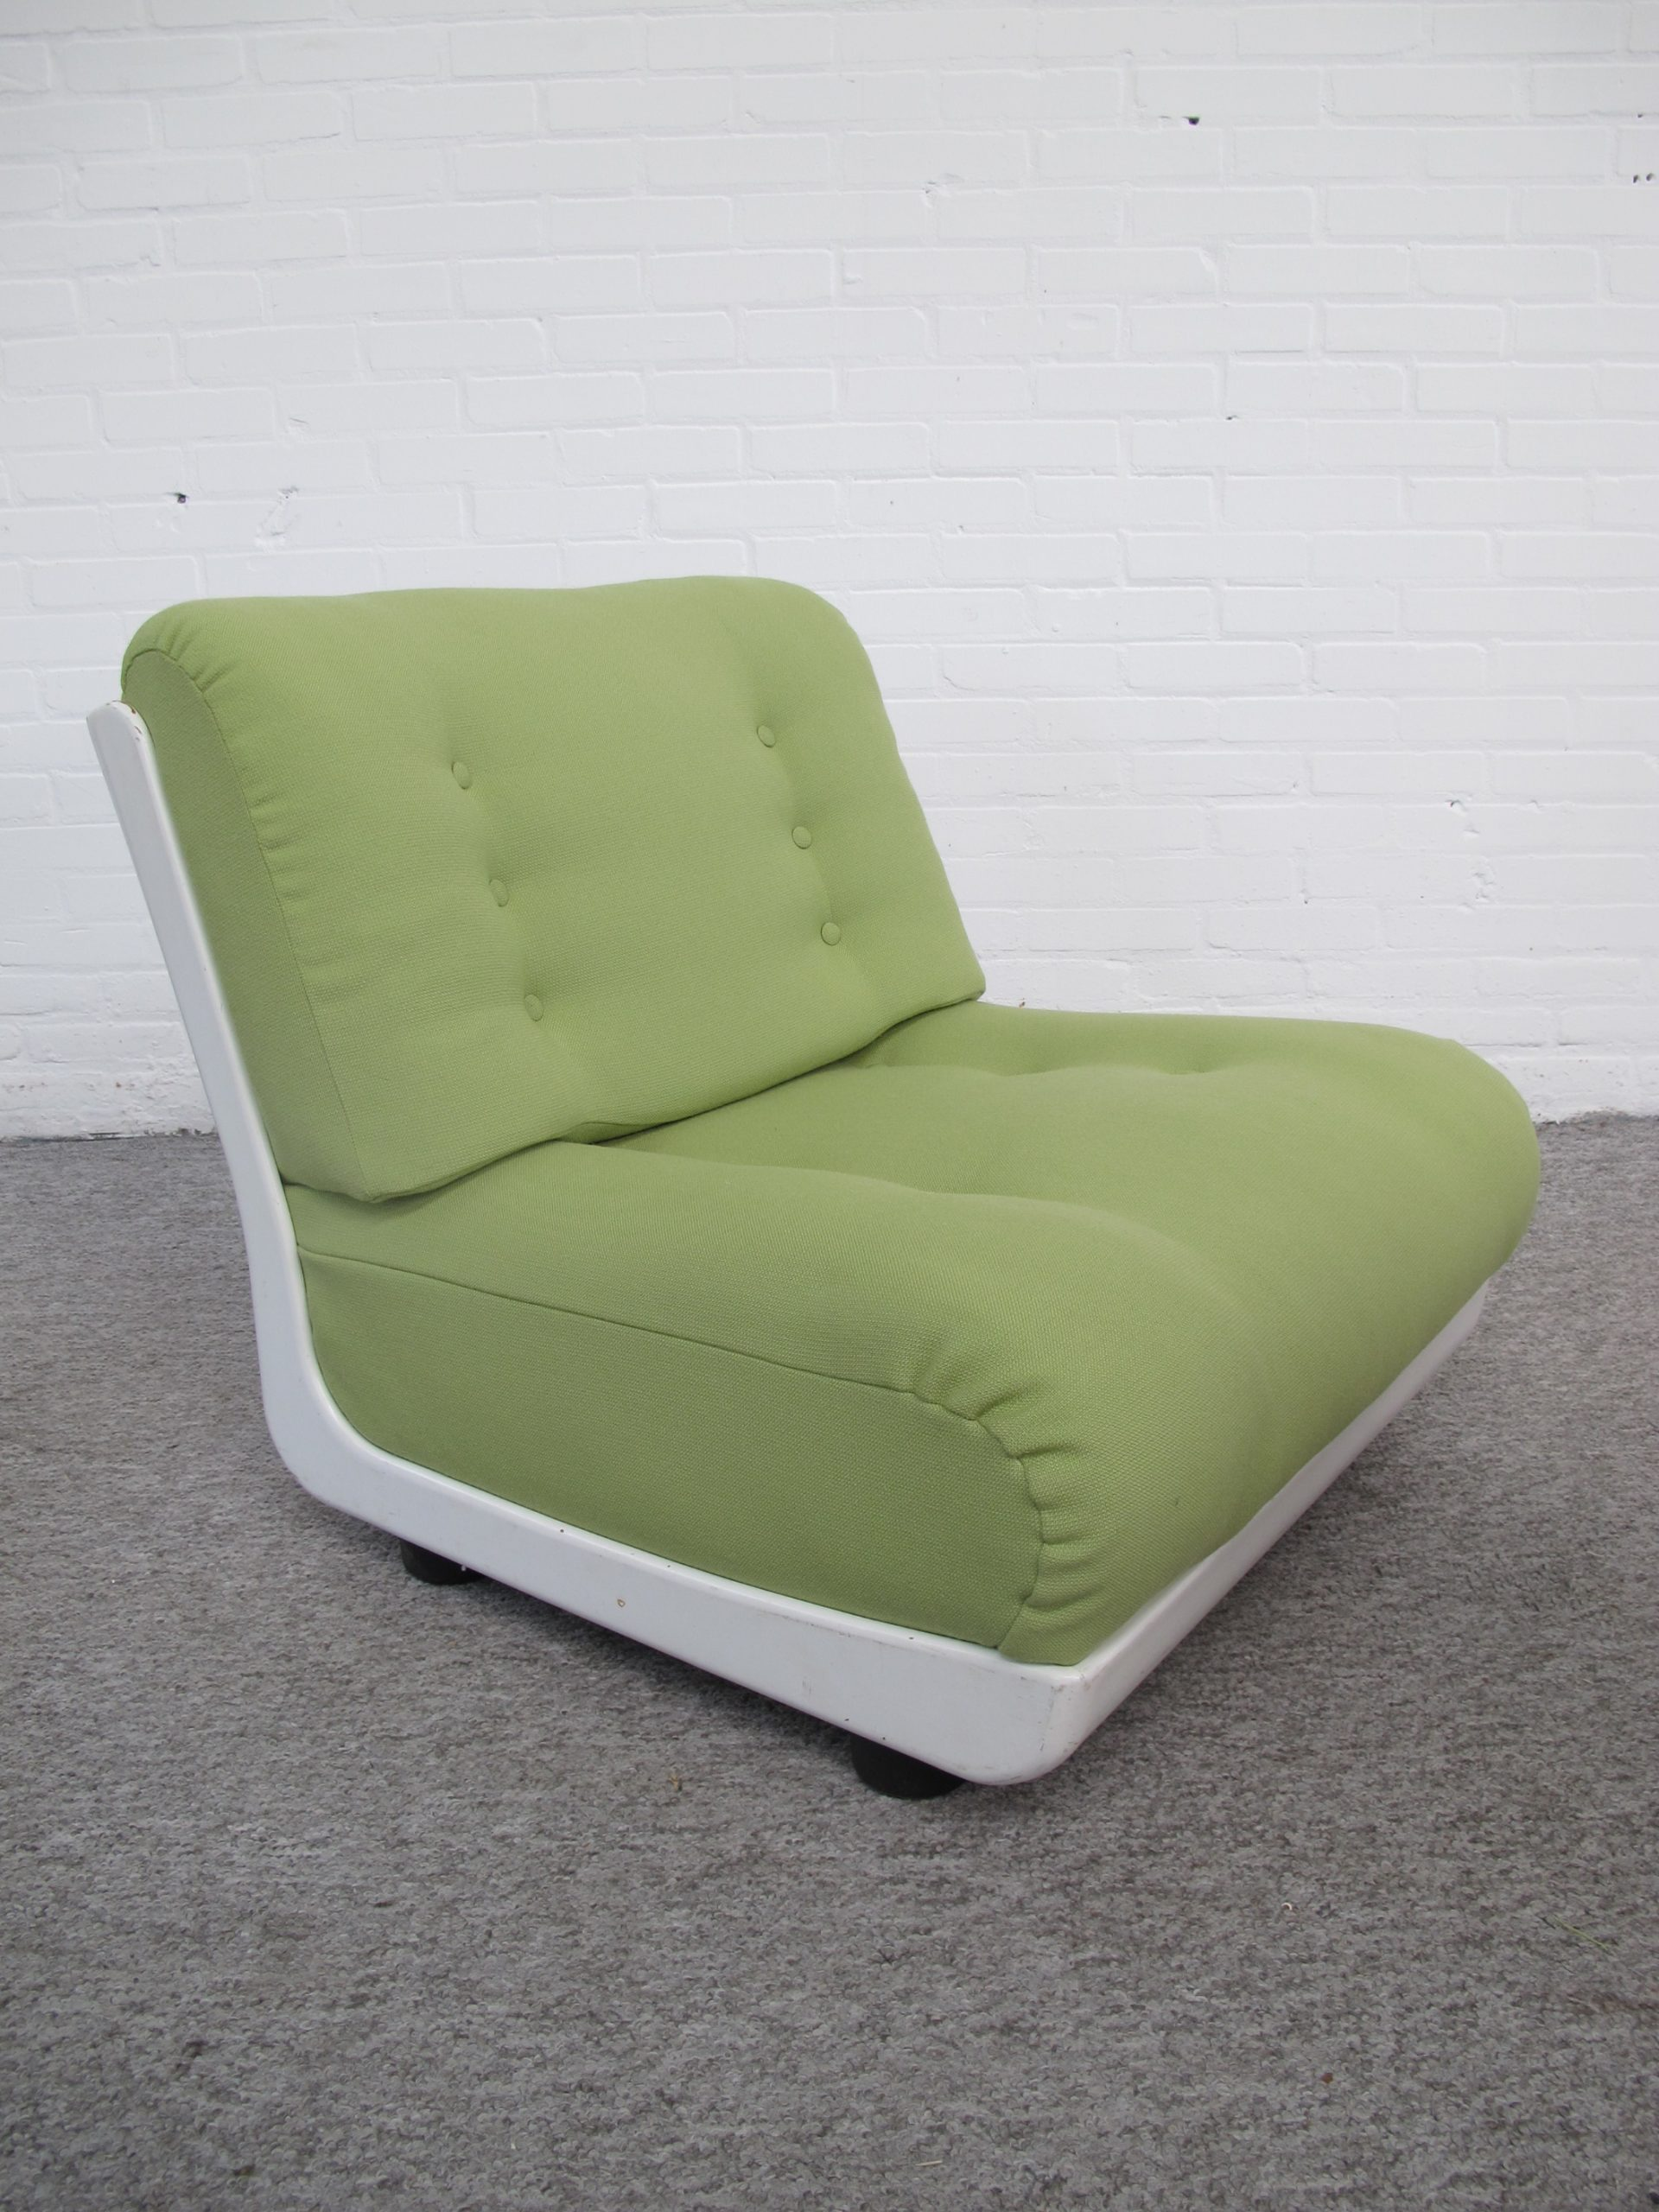 Lounge Chair Fauteuil Space Age C&B Italy vintage midcentury